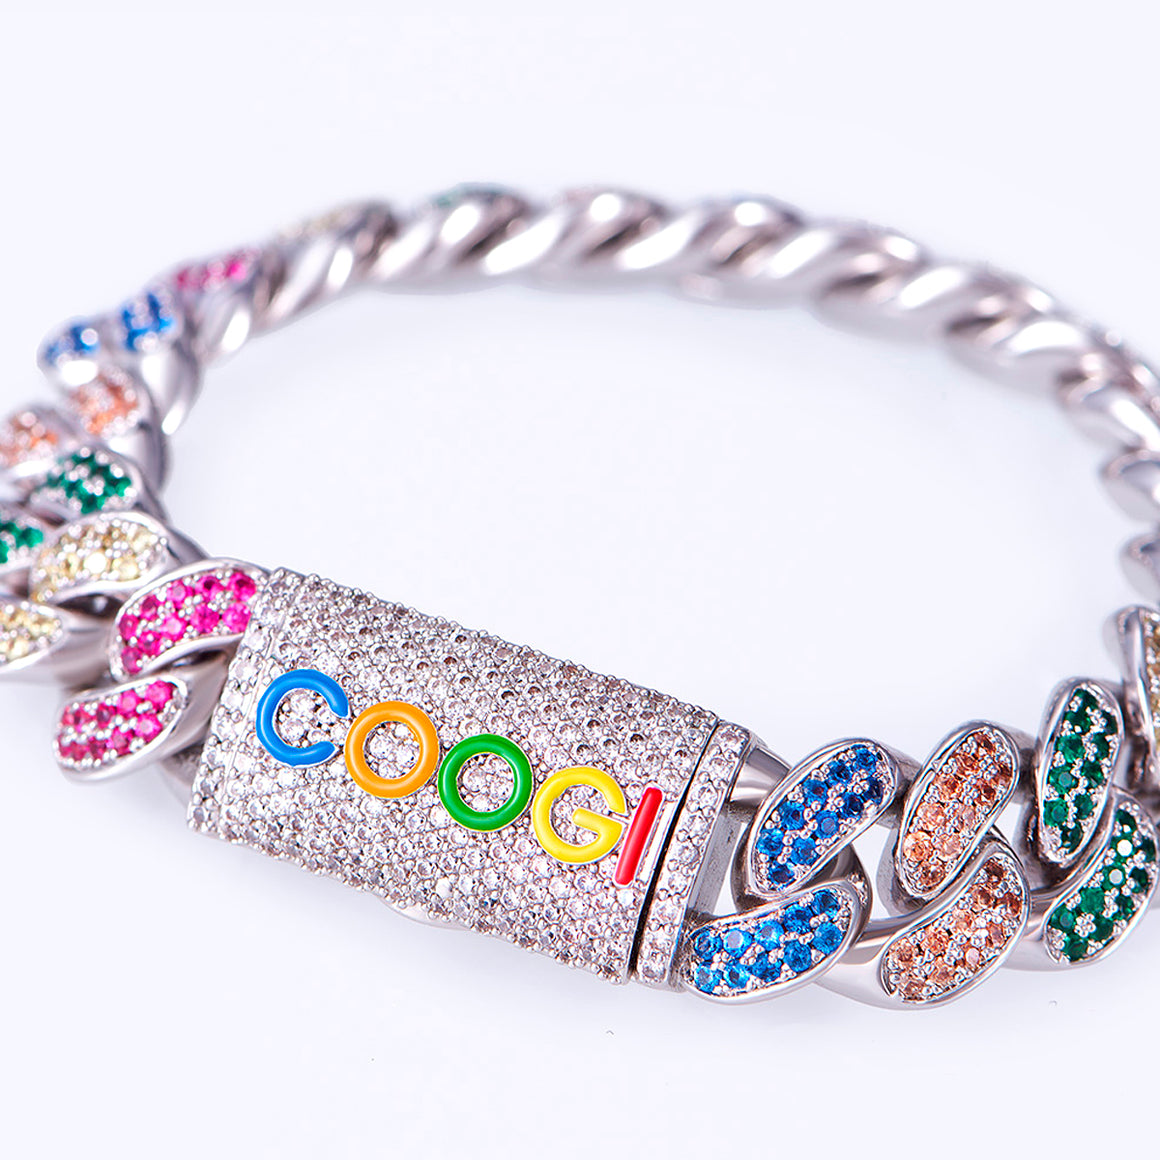 COOGI X Aporro Beating Cuban Link Bracelet, Ltd Ed - White Gold